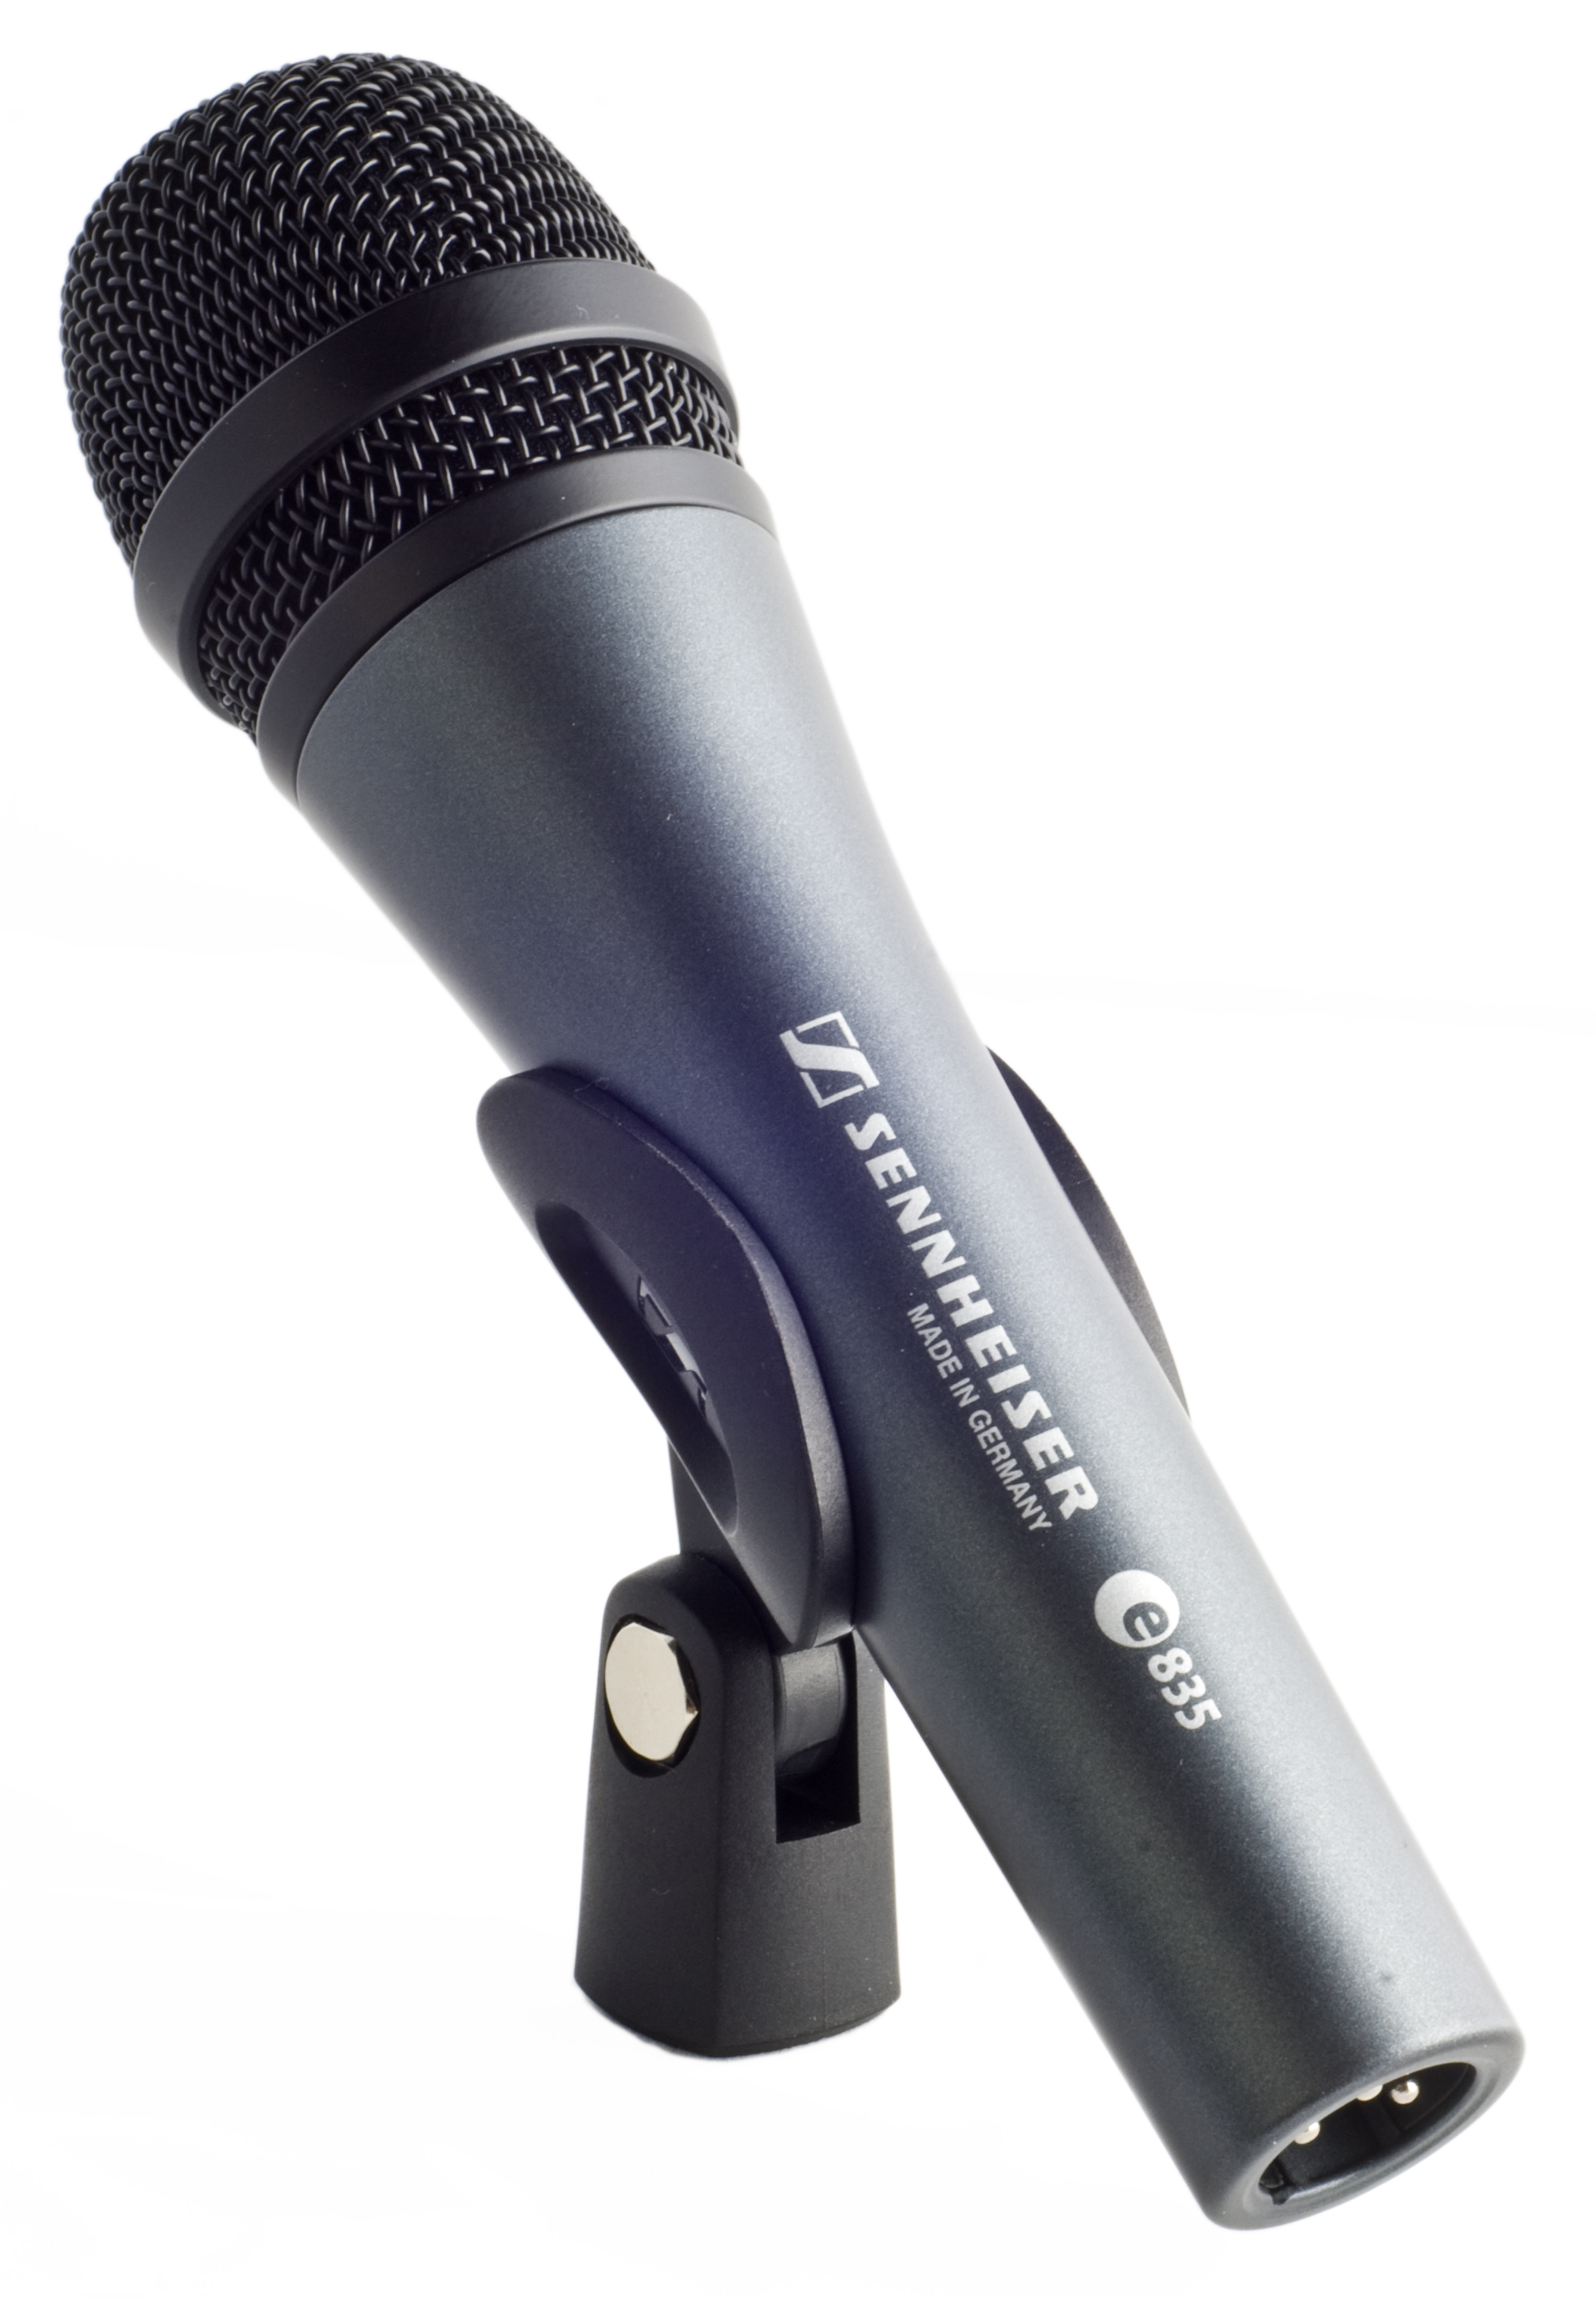 Sennheiser E835 Sound Light Rental Event Media Studio Electret Microphone To Xlr Wiring Together With Sc4060 Dpa Microphones The Is A Cardioid Lead Vocal Stage Specially Designed Perform Under